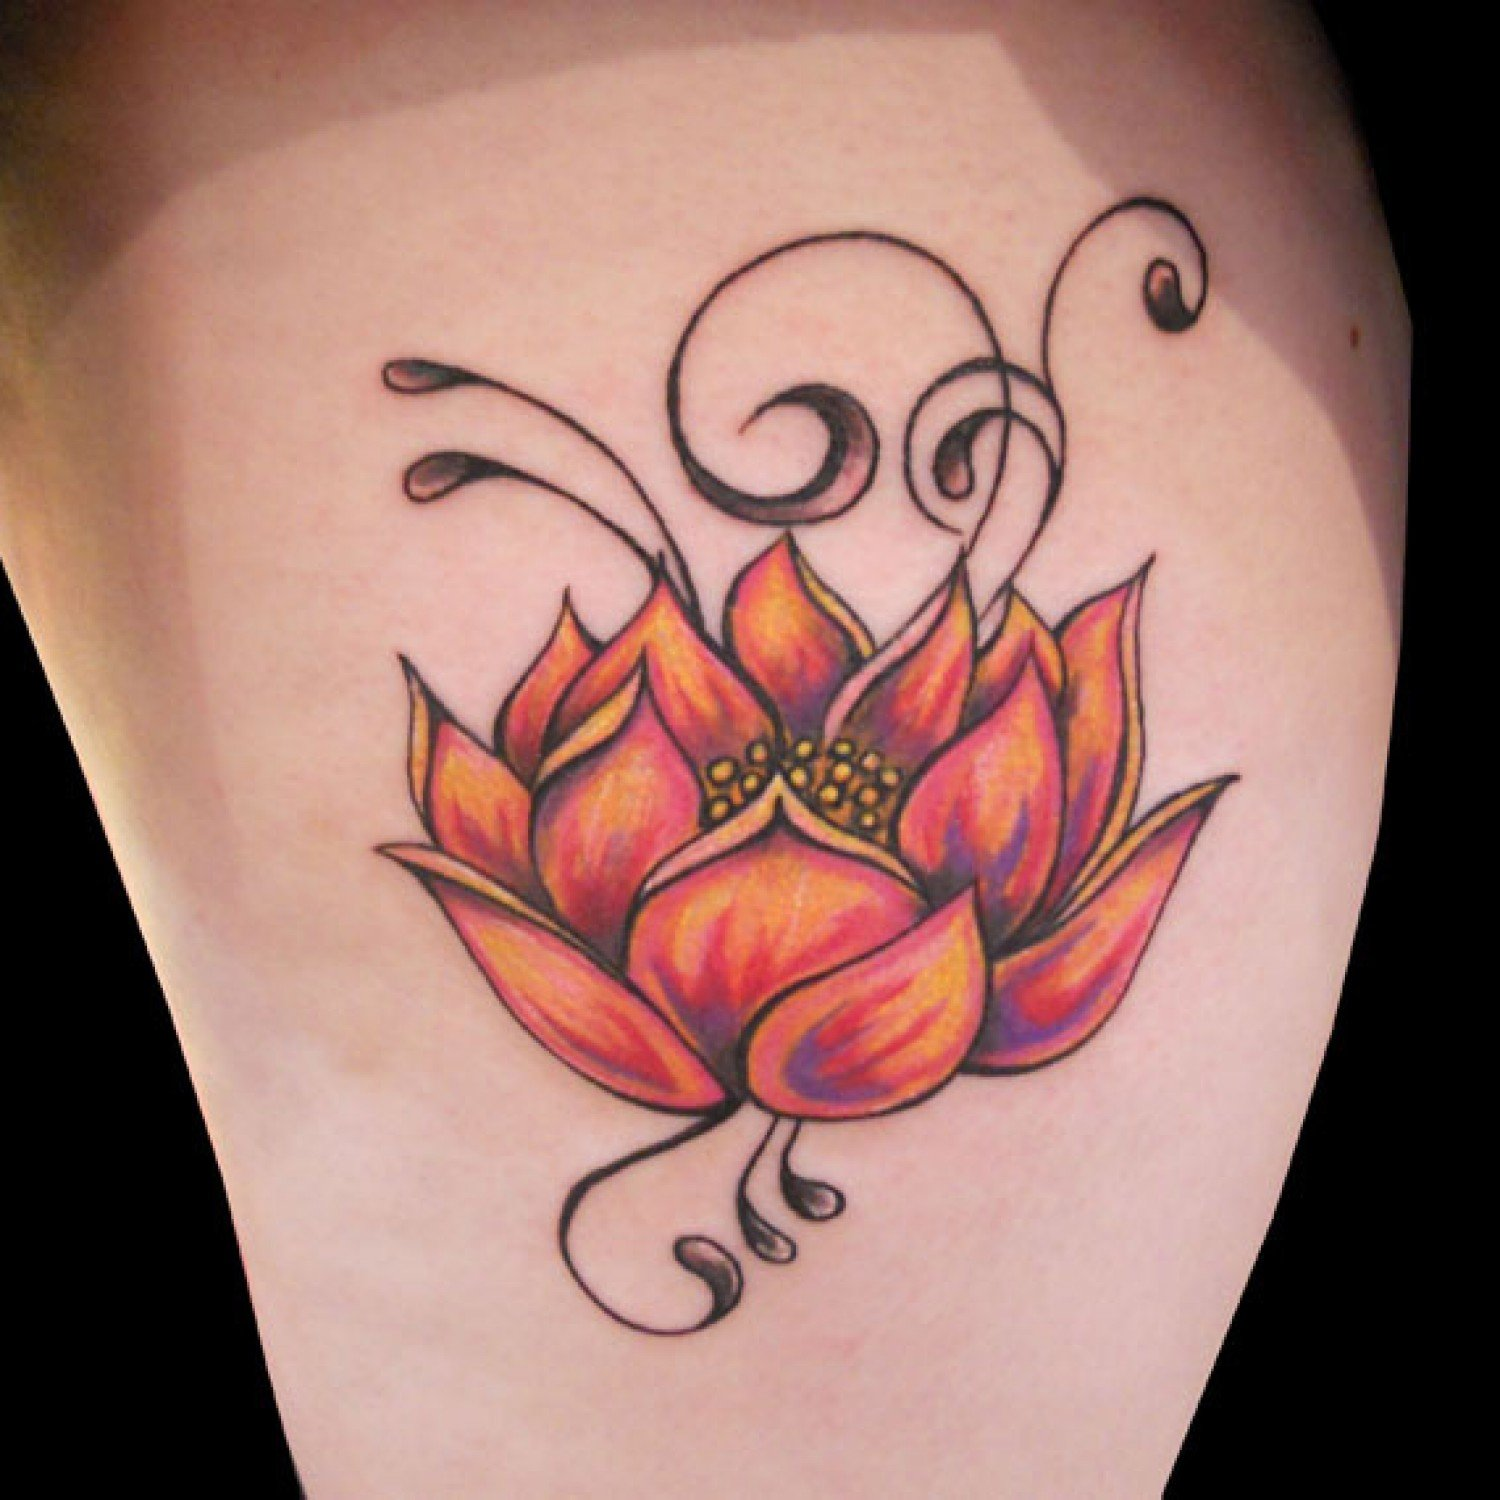 41 Enticing Lotus Flower Tattoos